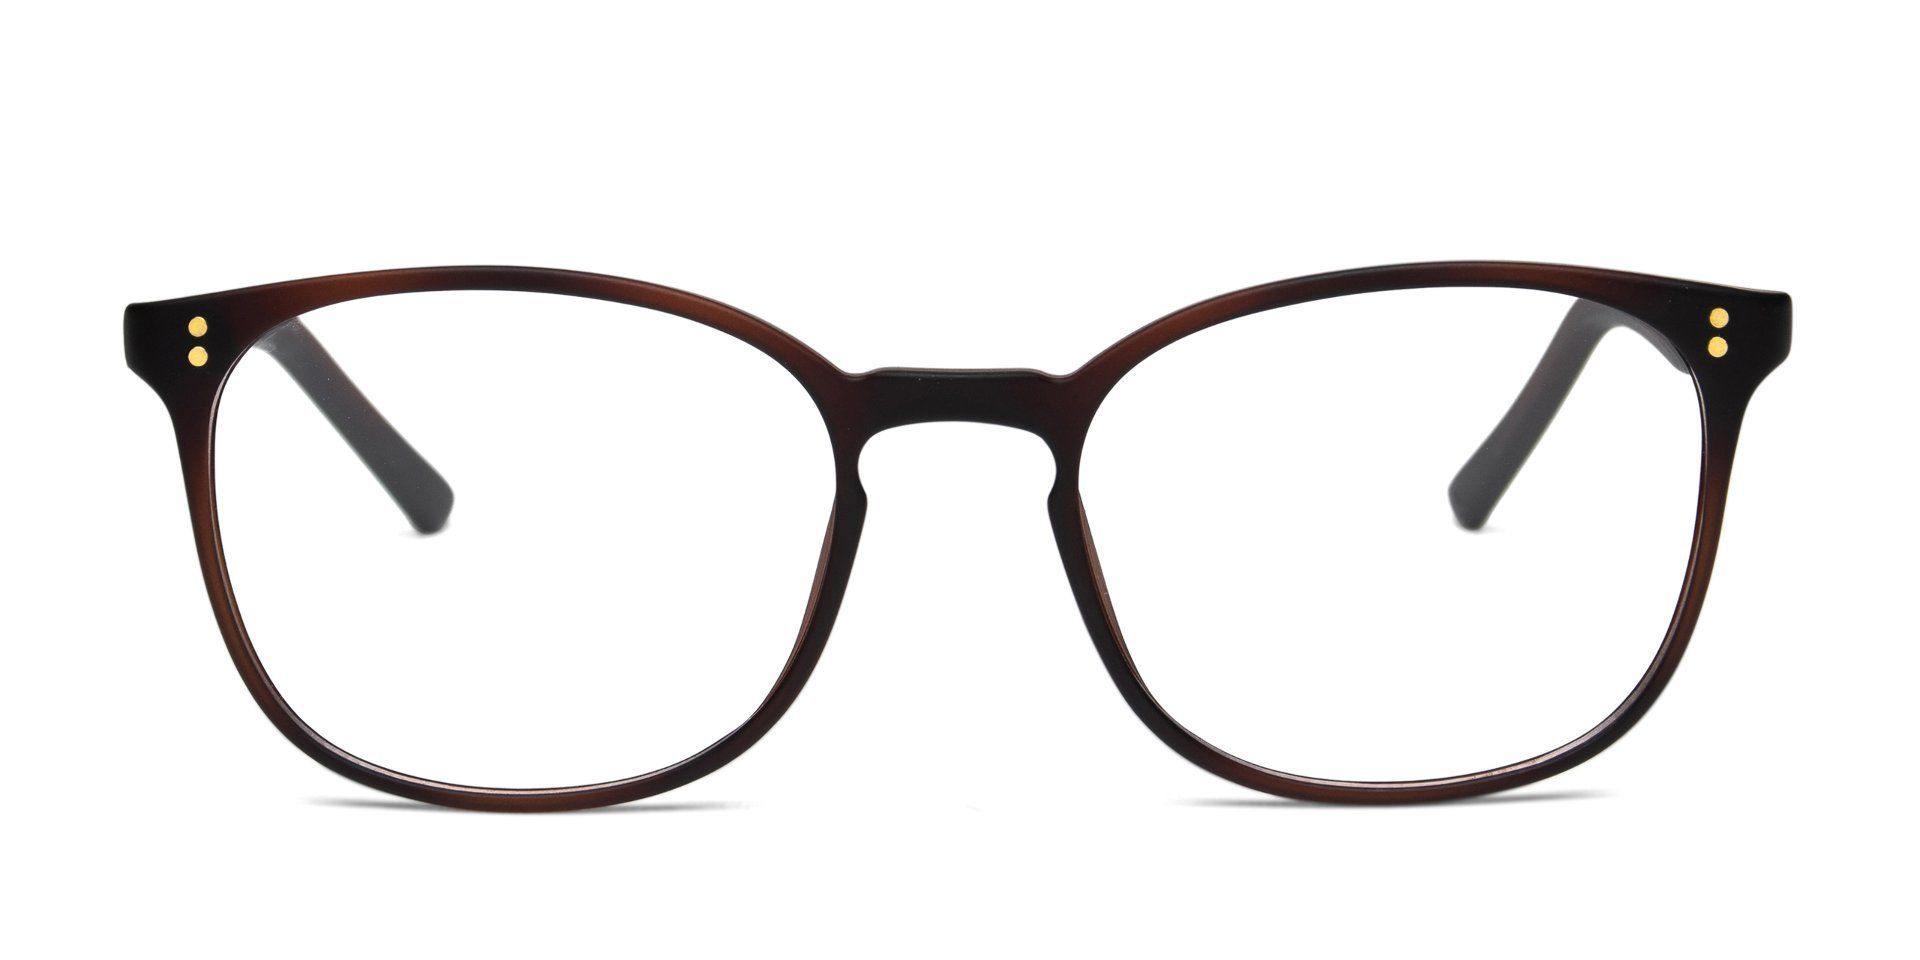 FRAME Dark Matt Tortoise Shell